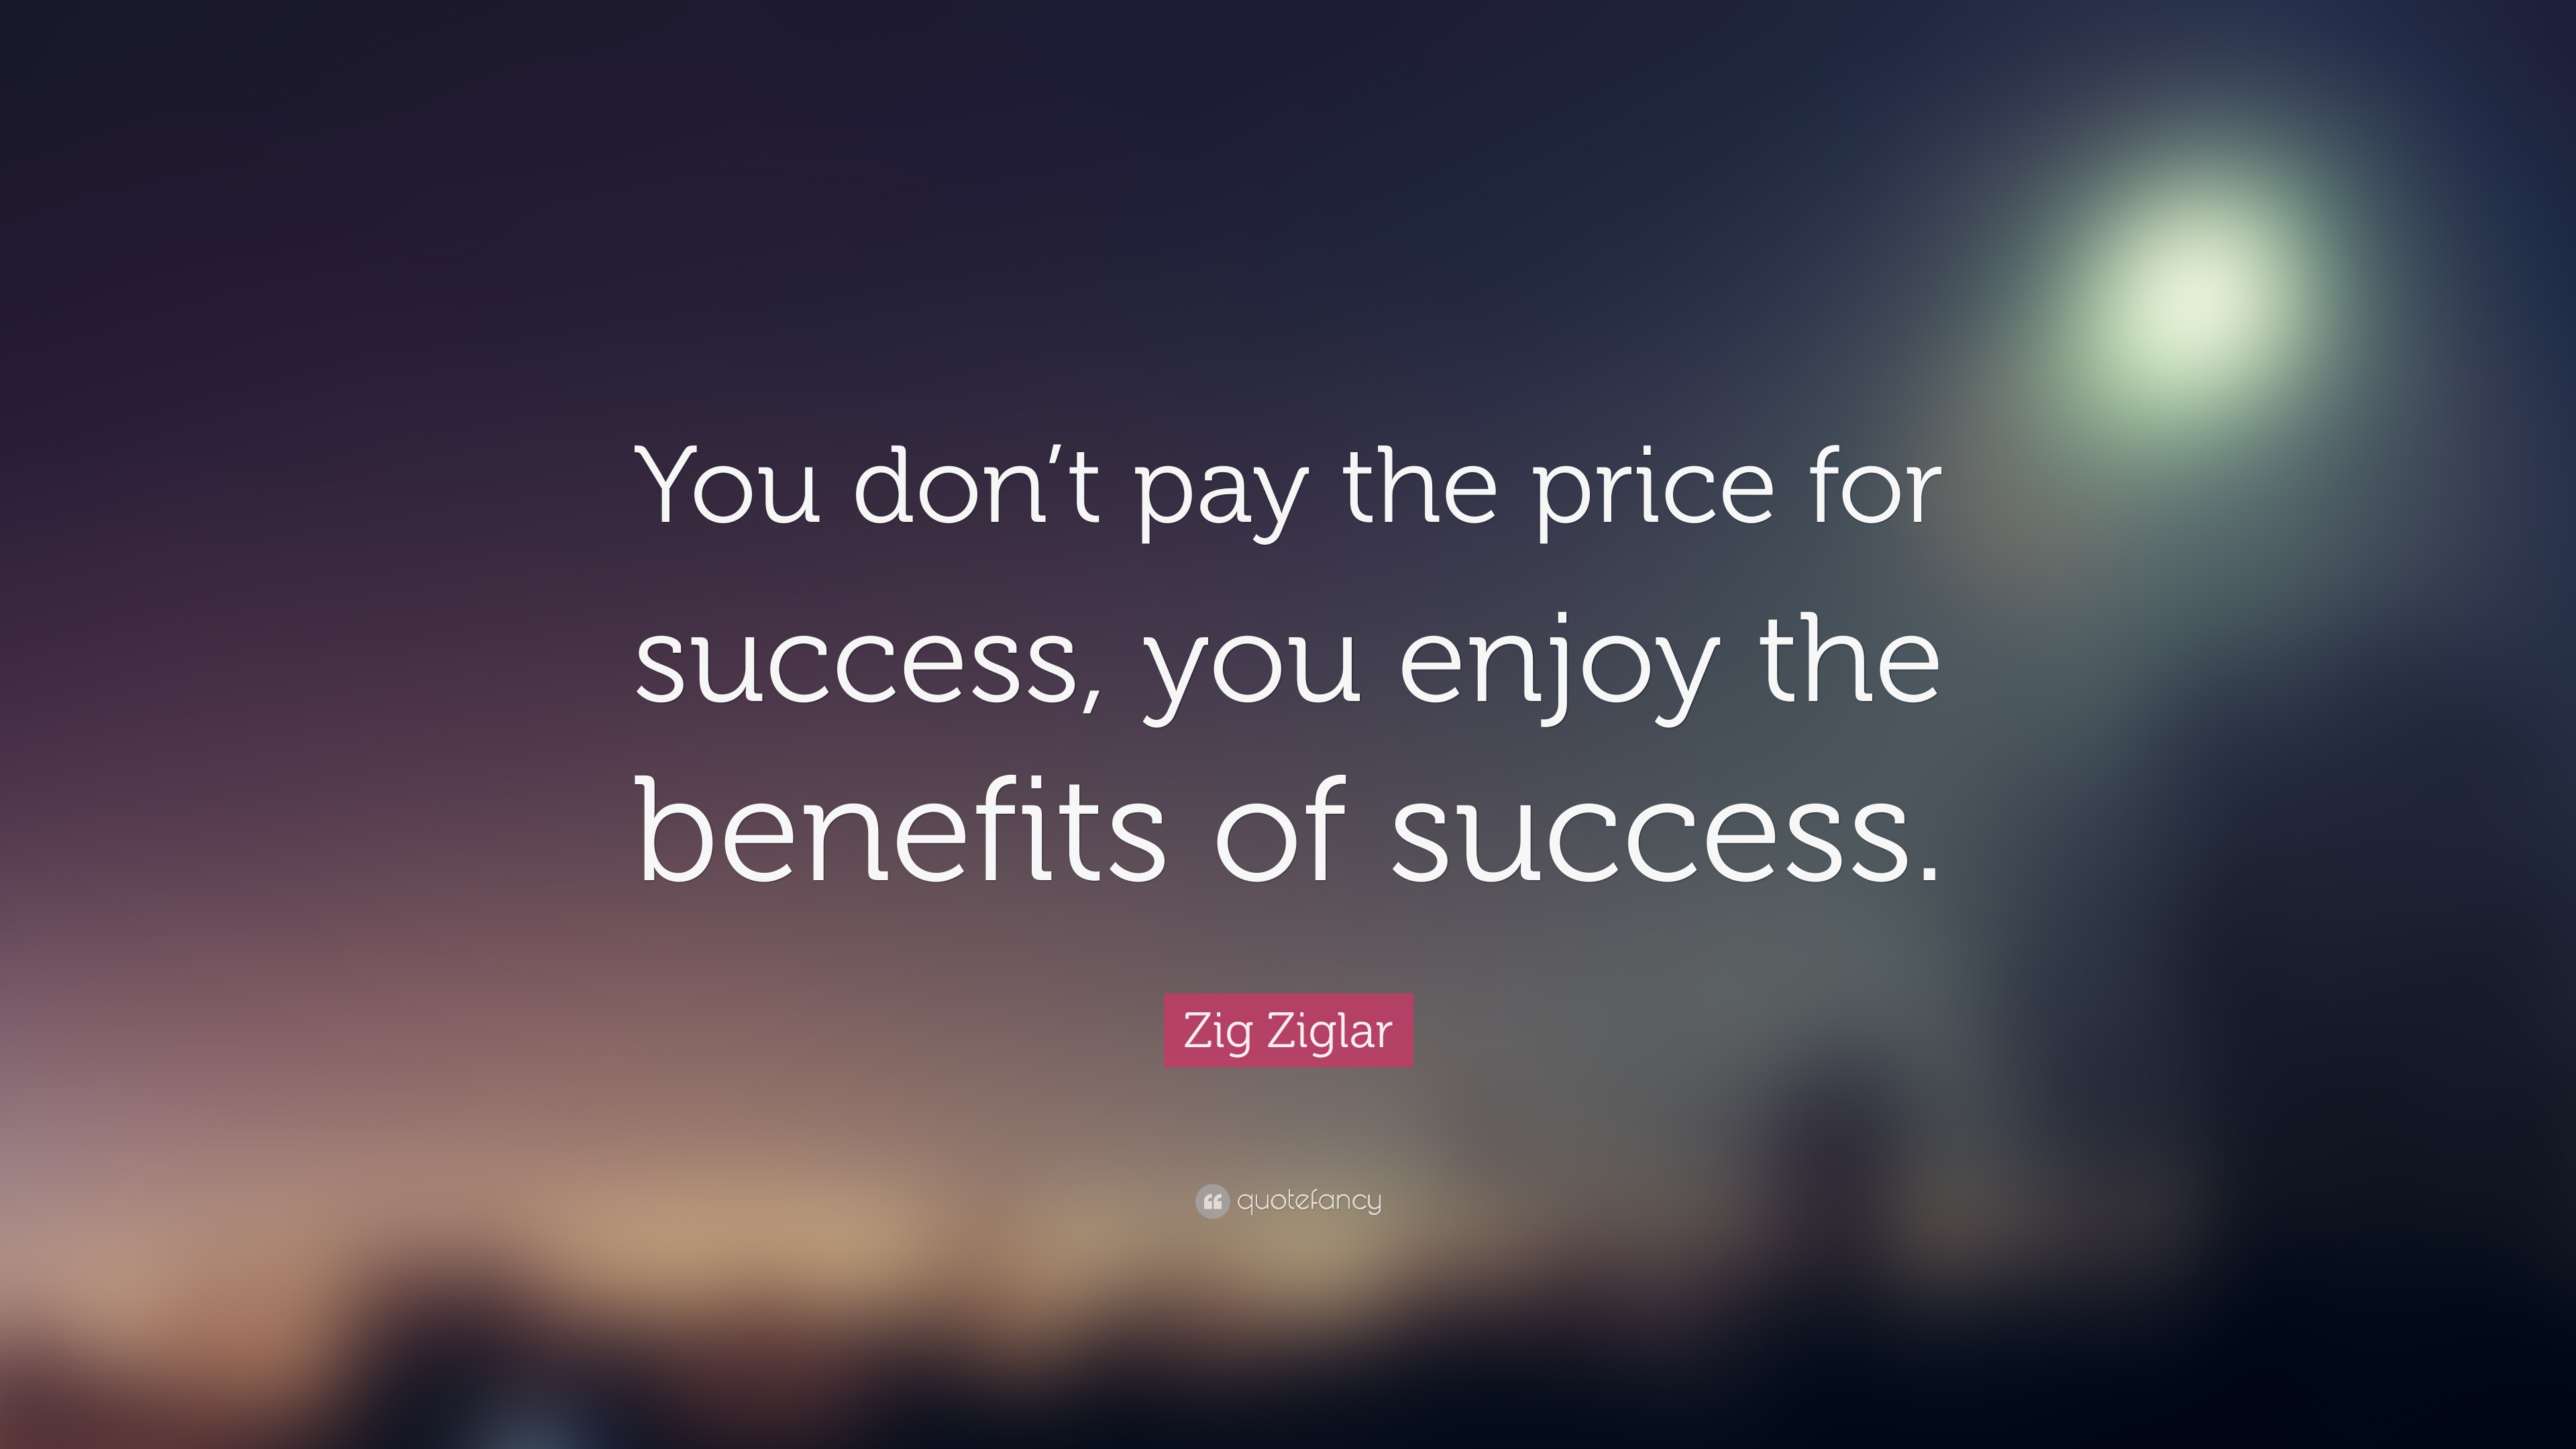 to have / enjoy success